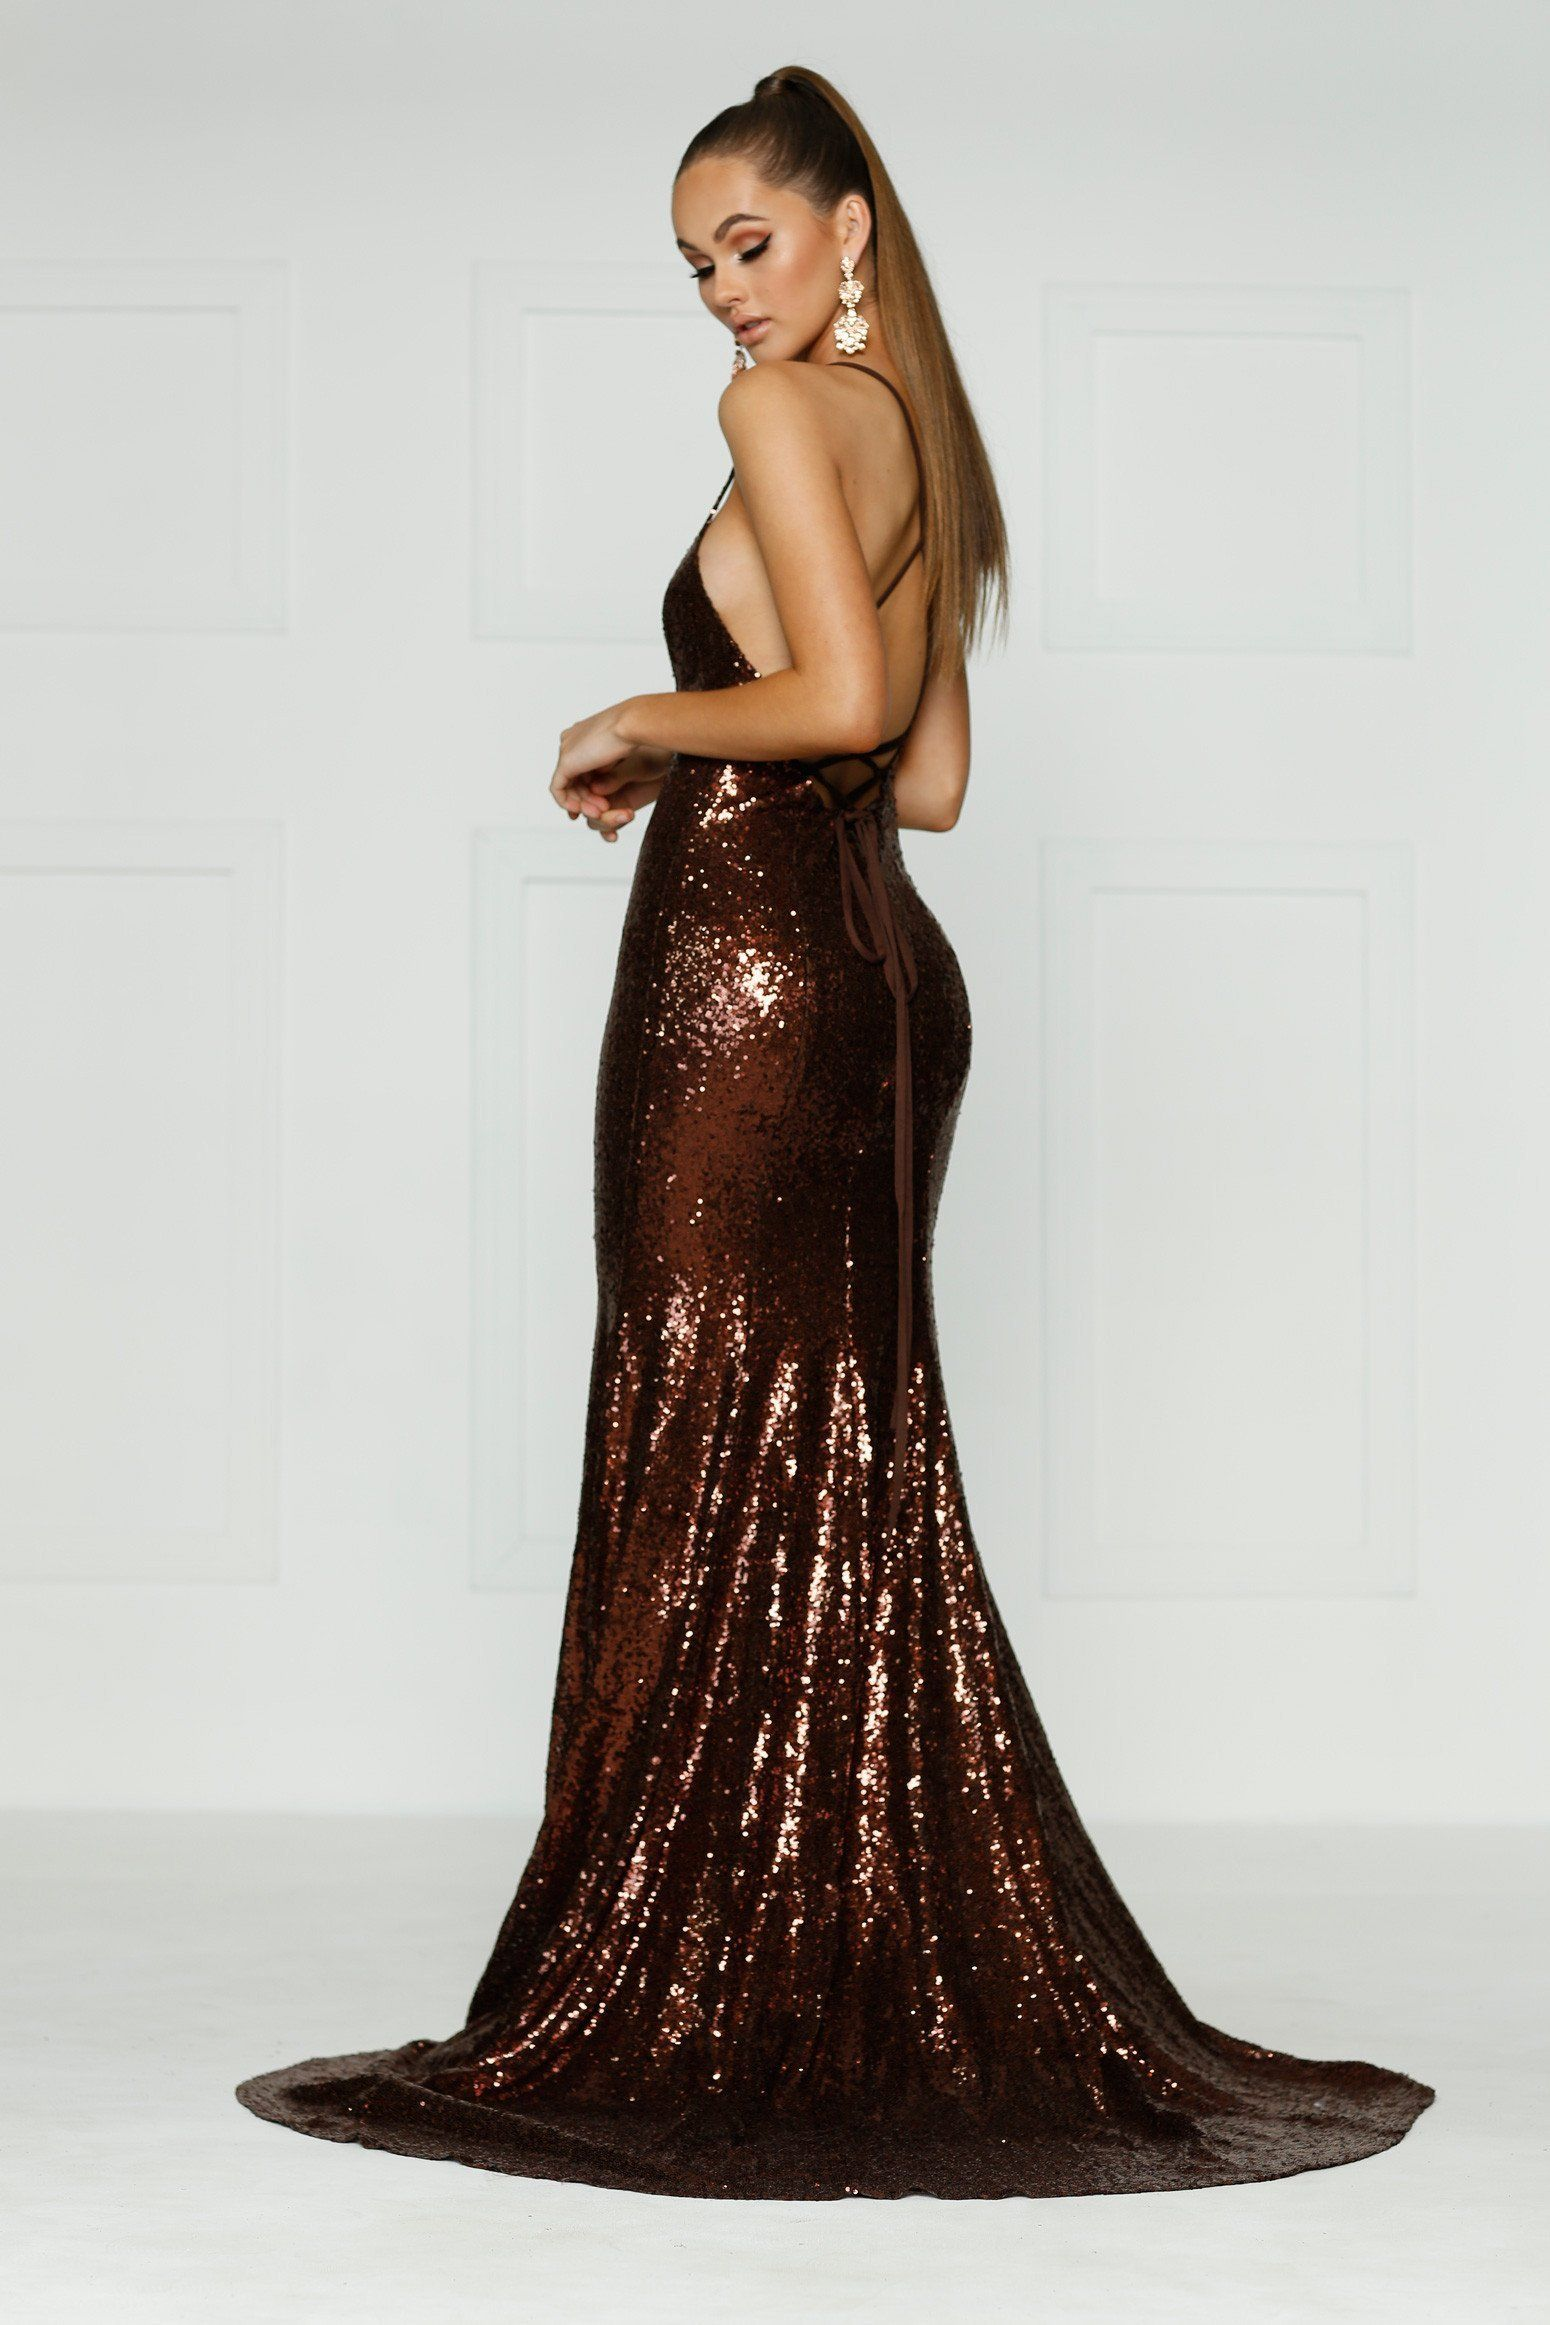 59ada4c50c70e A&N Kendall Sequin Gown - Chocolate Brown in 2019 | Prom/Ball ...